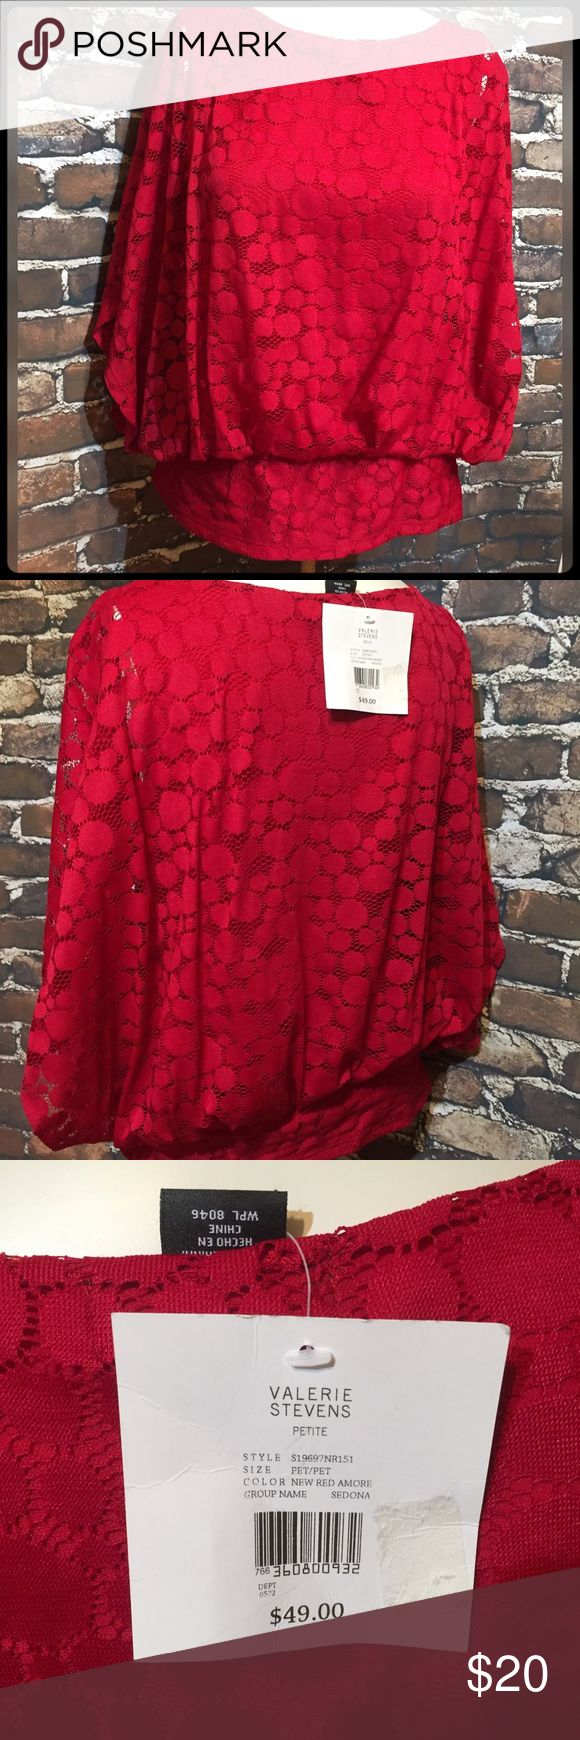 Red Batwing Top Beautiful red top with fitted waist band. NWT 100% Nylon. Size is Petite valarie stevens Tops Tunics